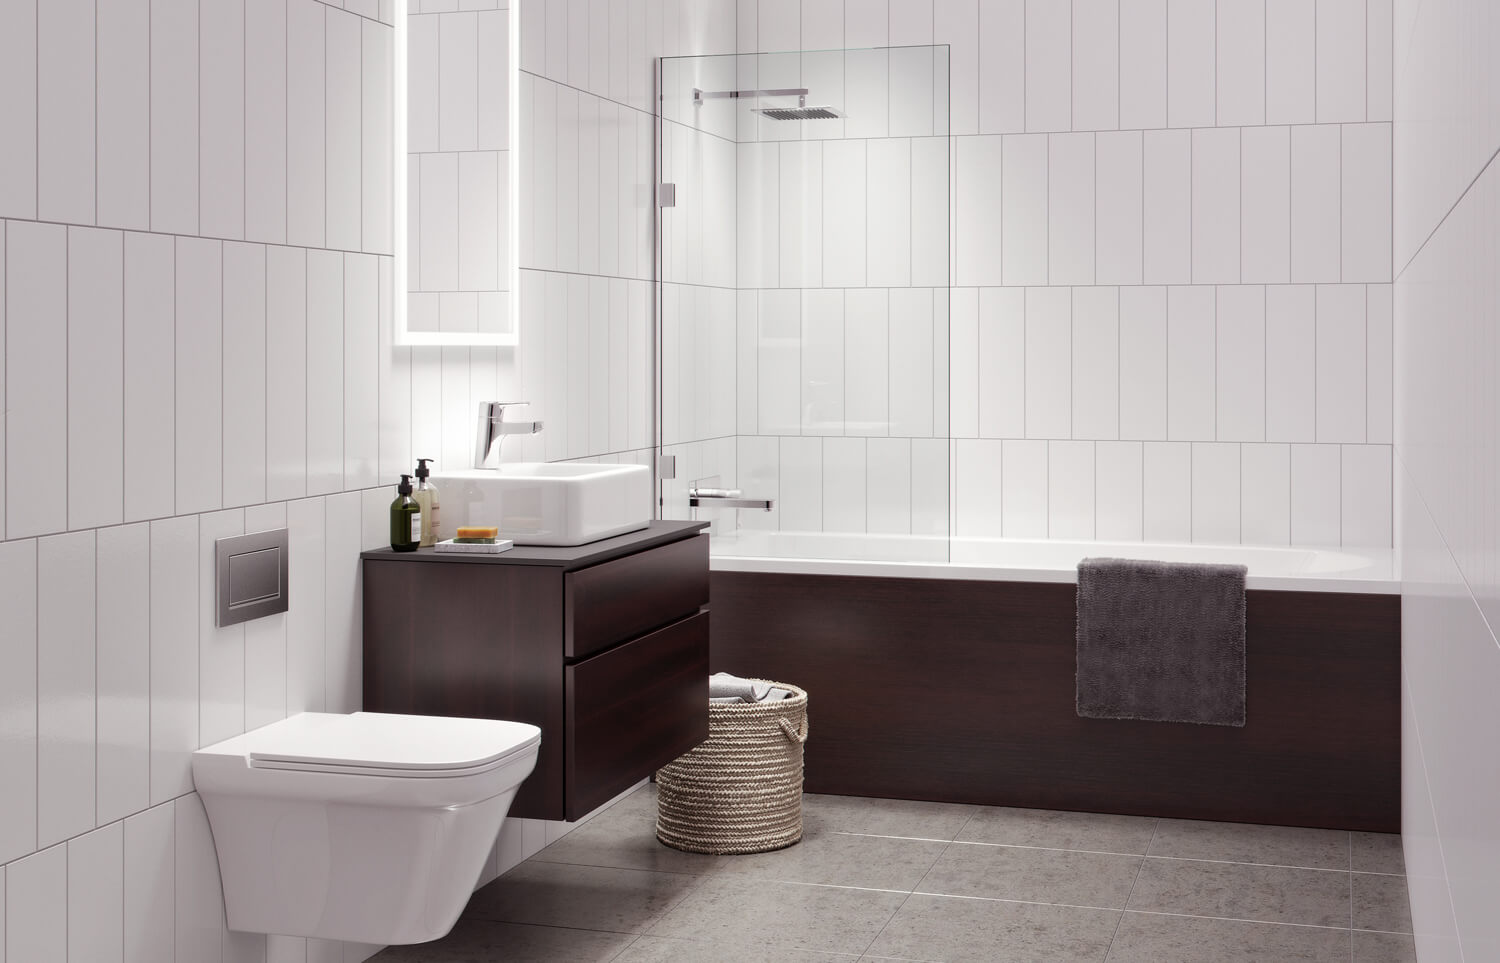 Urban CGI of Derwent Street high rise development, showing a clean fresh bathroom with white tiled walls, warm brown wooden bath side and cabinet, and modern 3 piece suite.